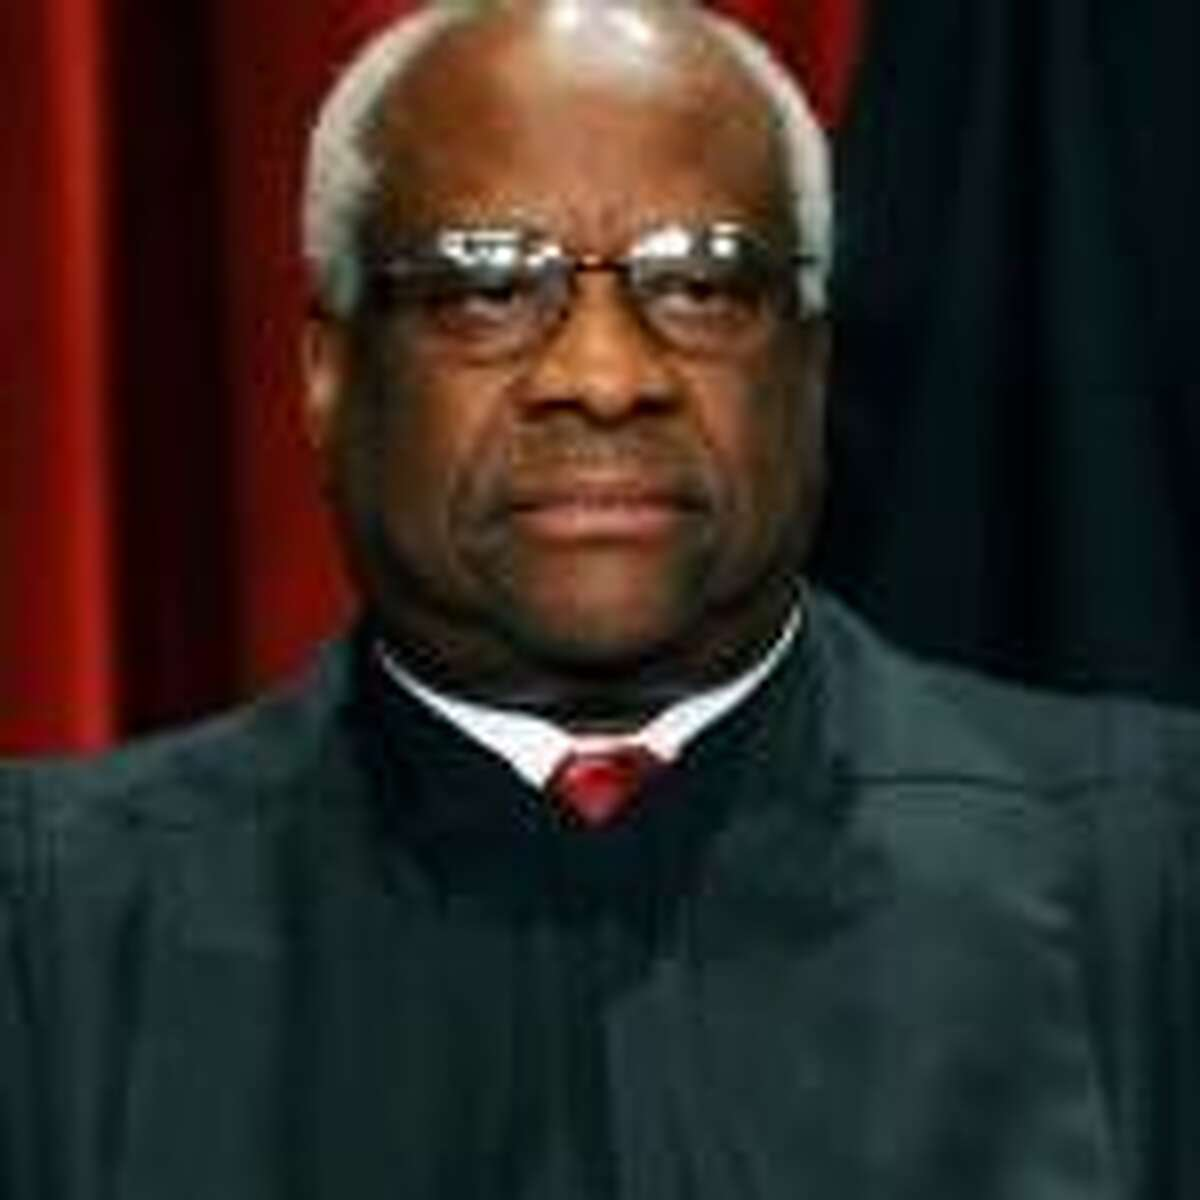 U.S. Supreme Court Justice Clarence Thomas: He's grown talkative since court begam hearing cases by teleconferencing.